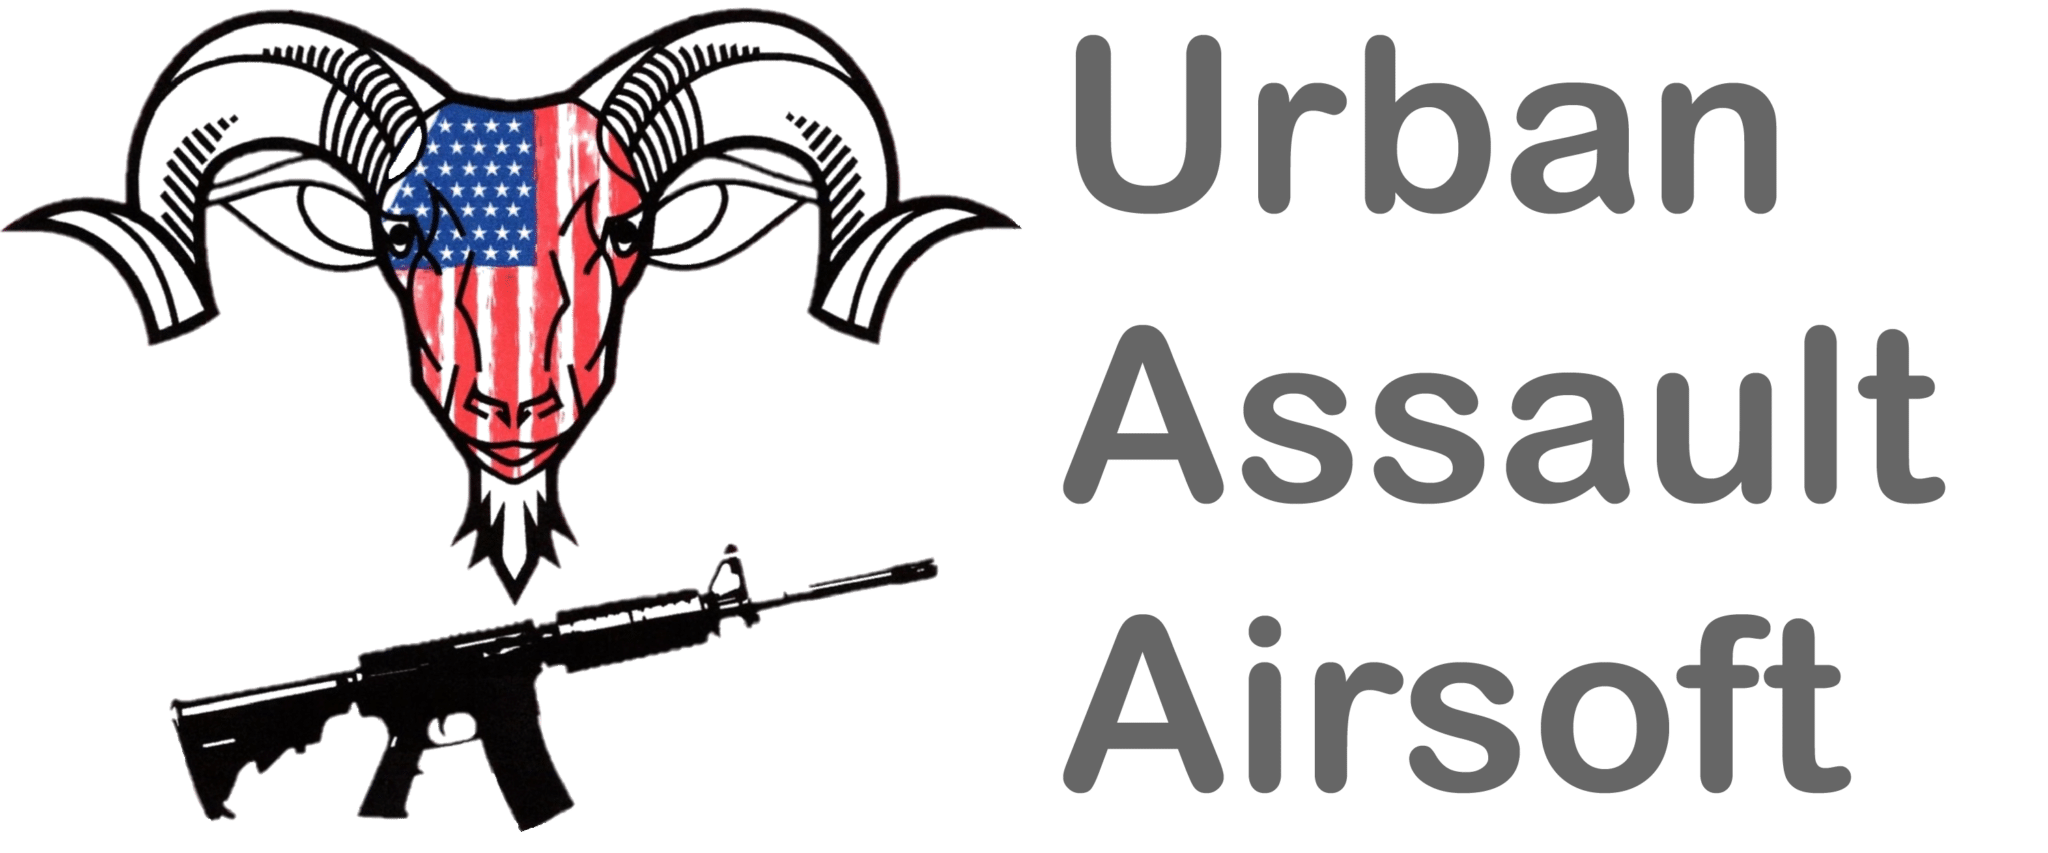 Urban Assault Airsoft - New Website